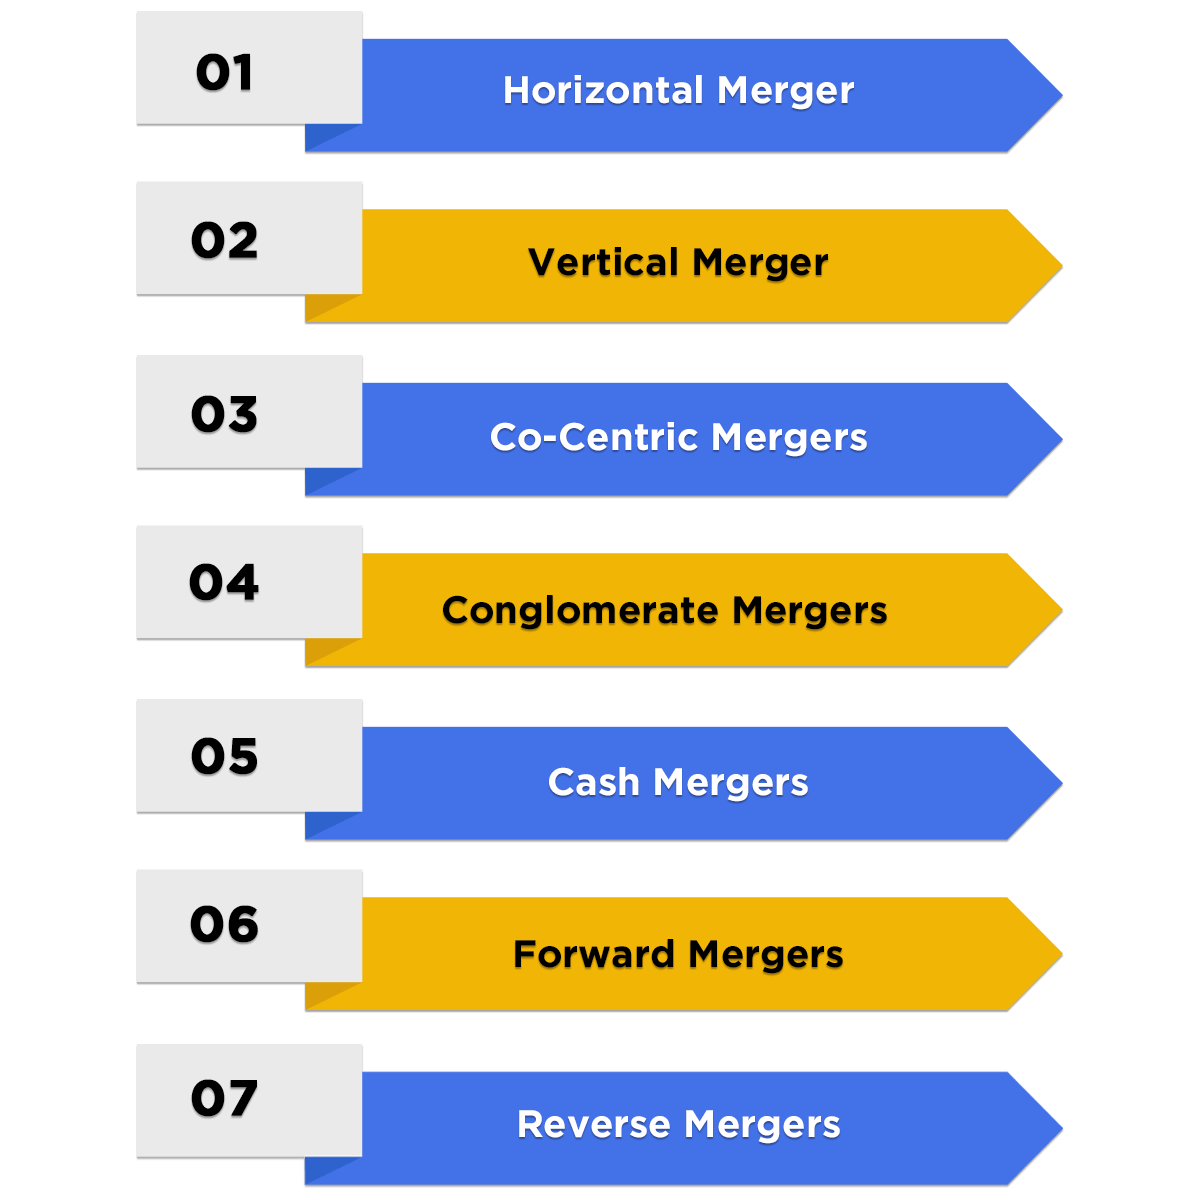 Types of Mergers in India